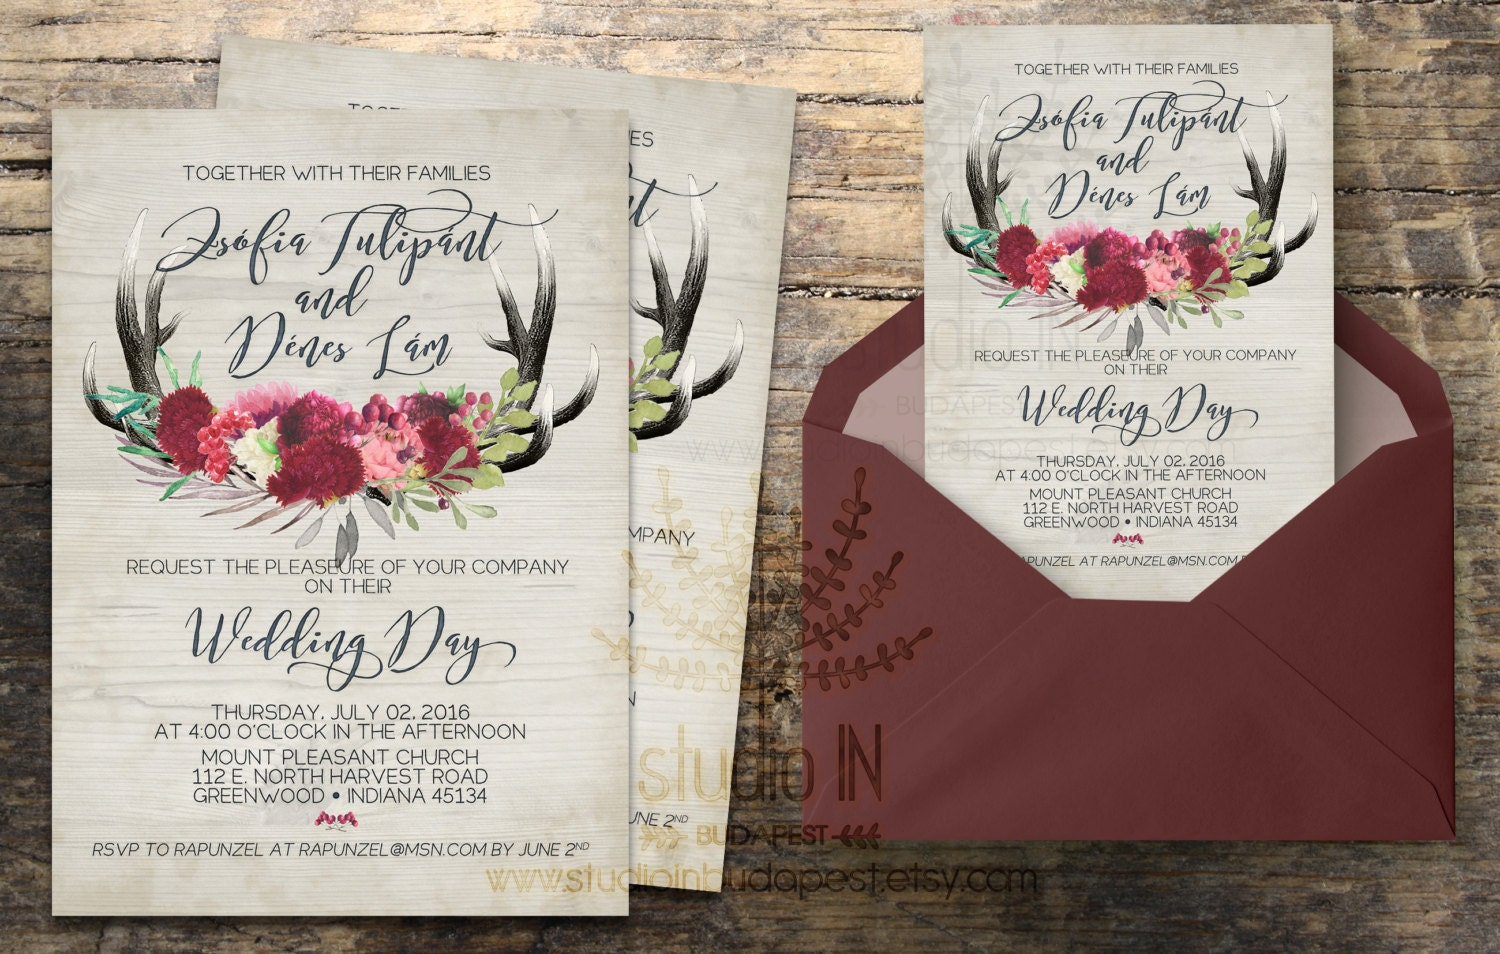 Rustic wedding invitation invite calligraphy